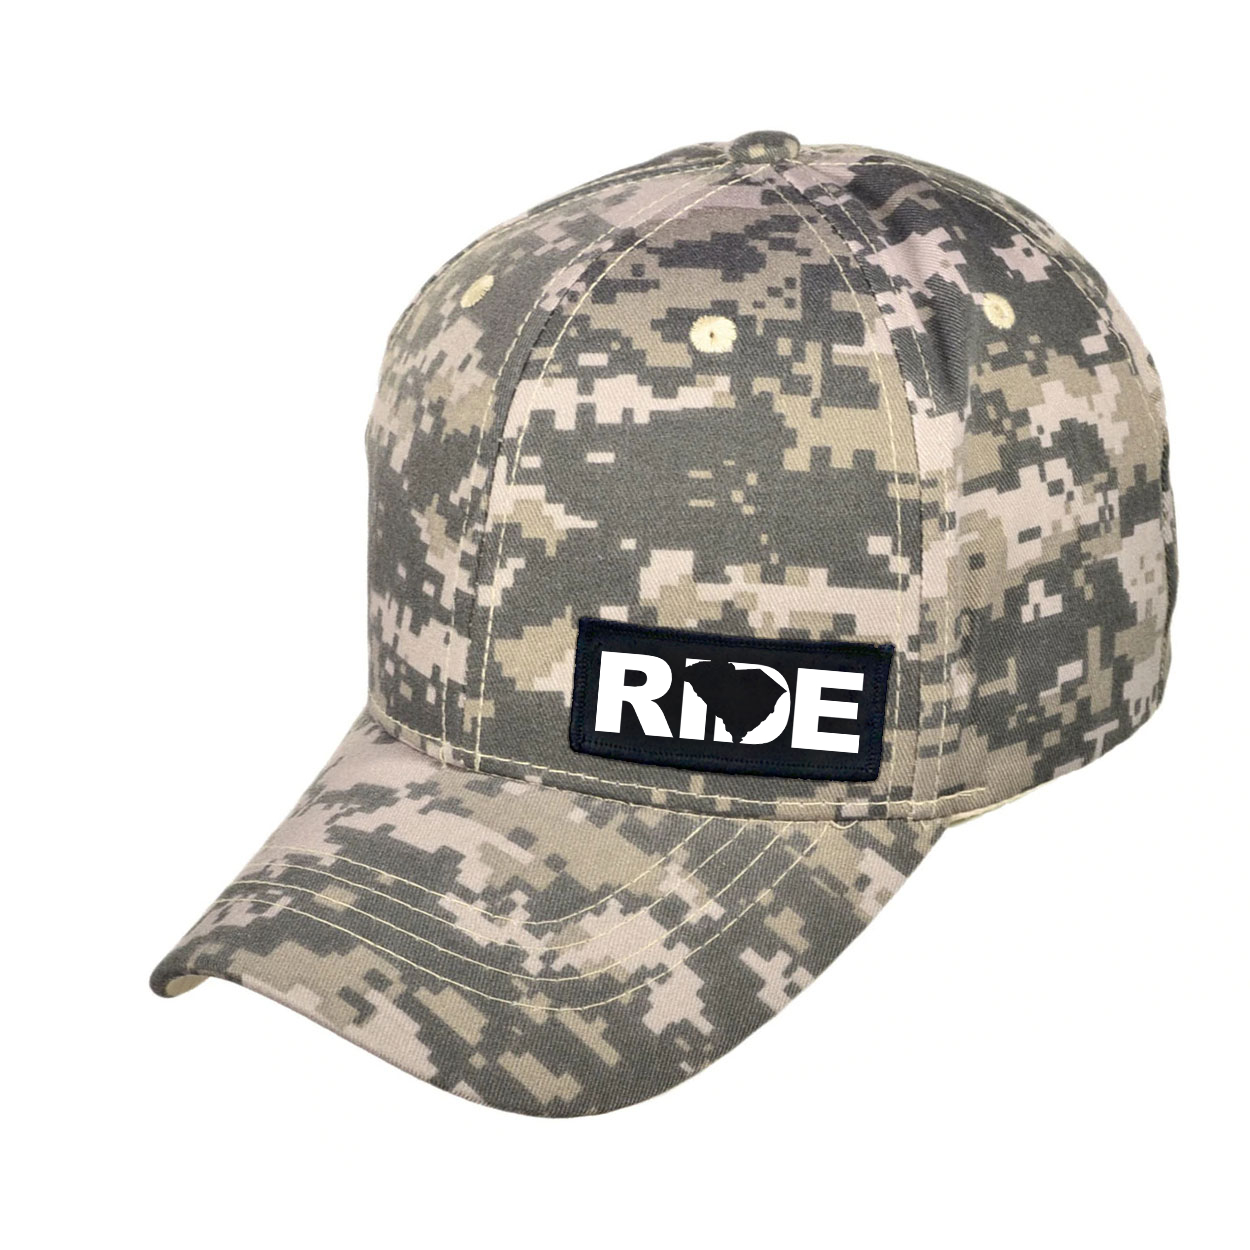 Ride South Carolina Night Out Woven Patch Hat Digital Camo (White Logo)